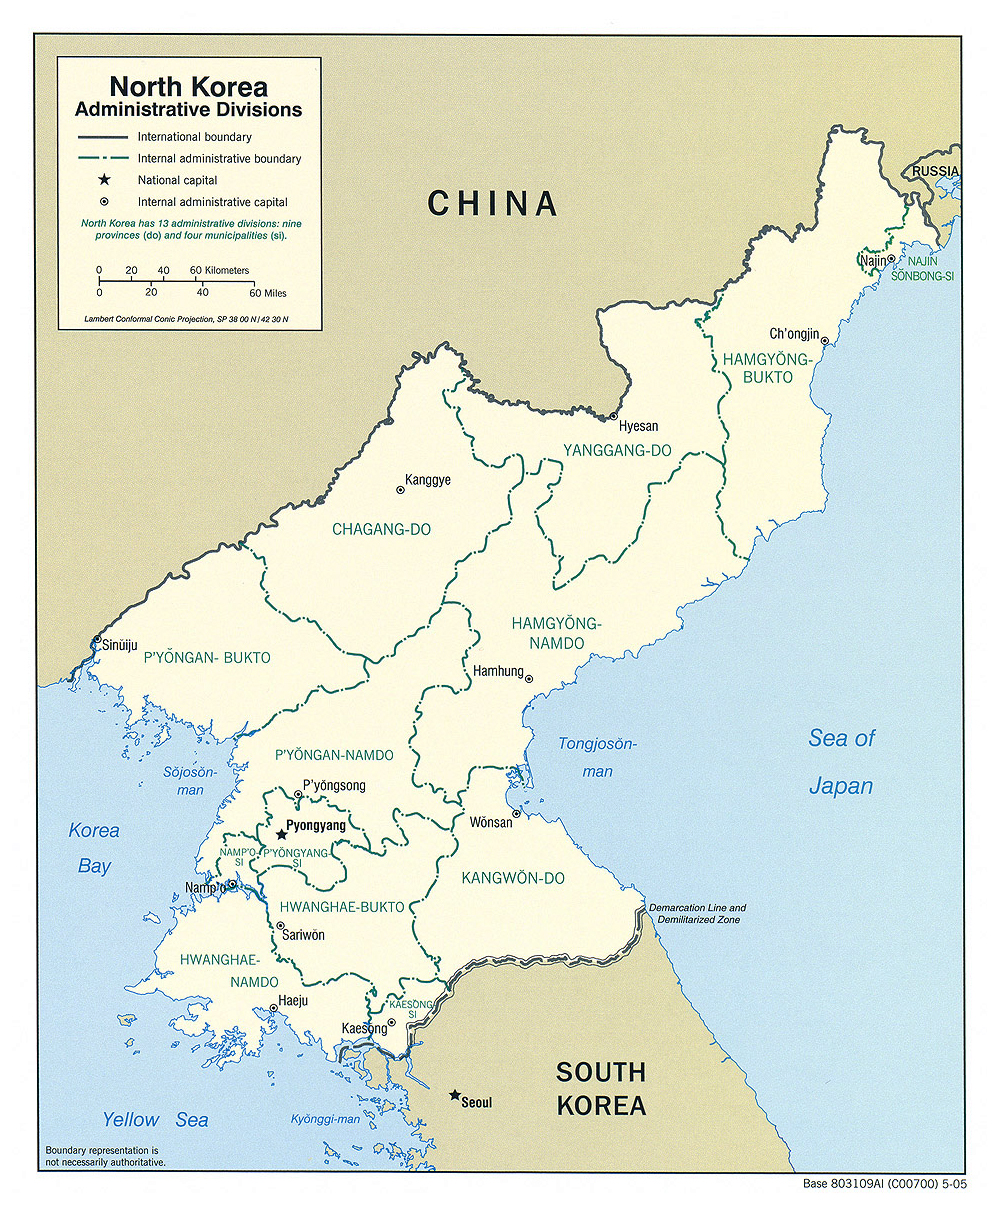 Maps of North Korea (DPRK) | Map Library | Maps of the World